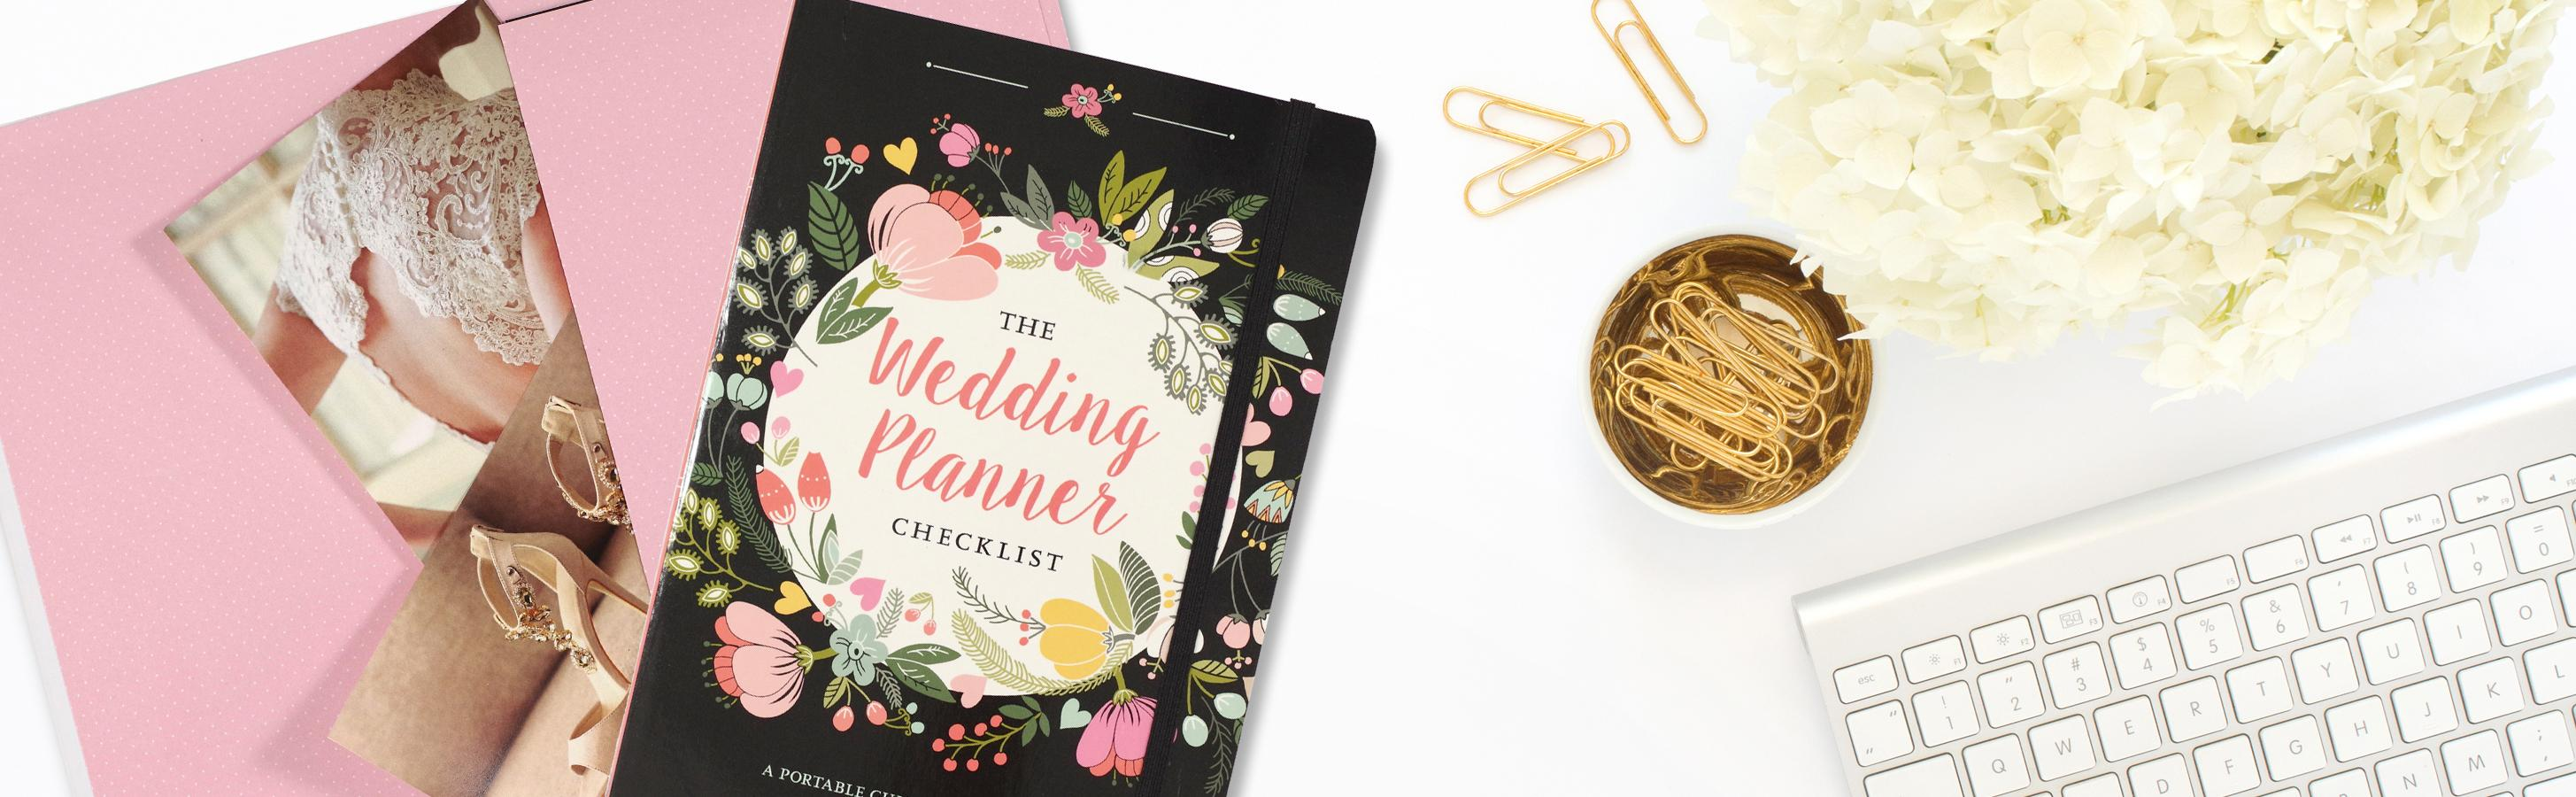 The Wedding Planner Checklist (A Portable Guide to Organizing your Dream Wedding): Peter Pauper